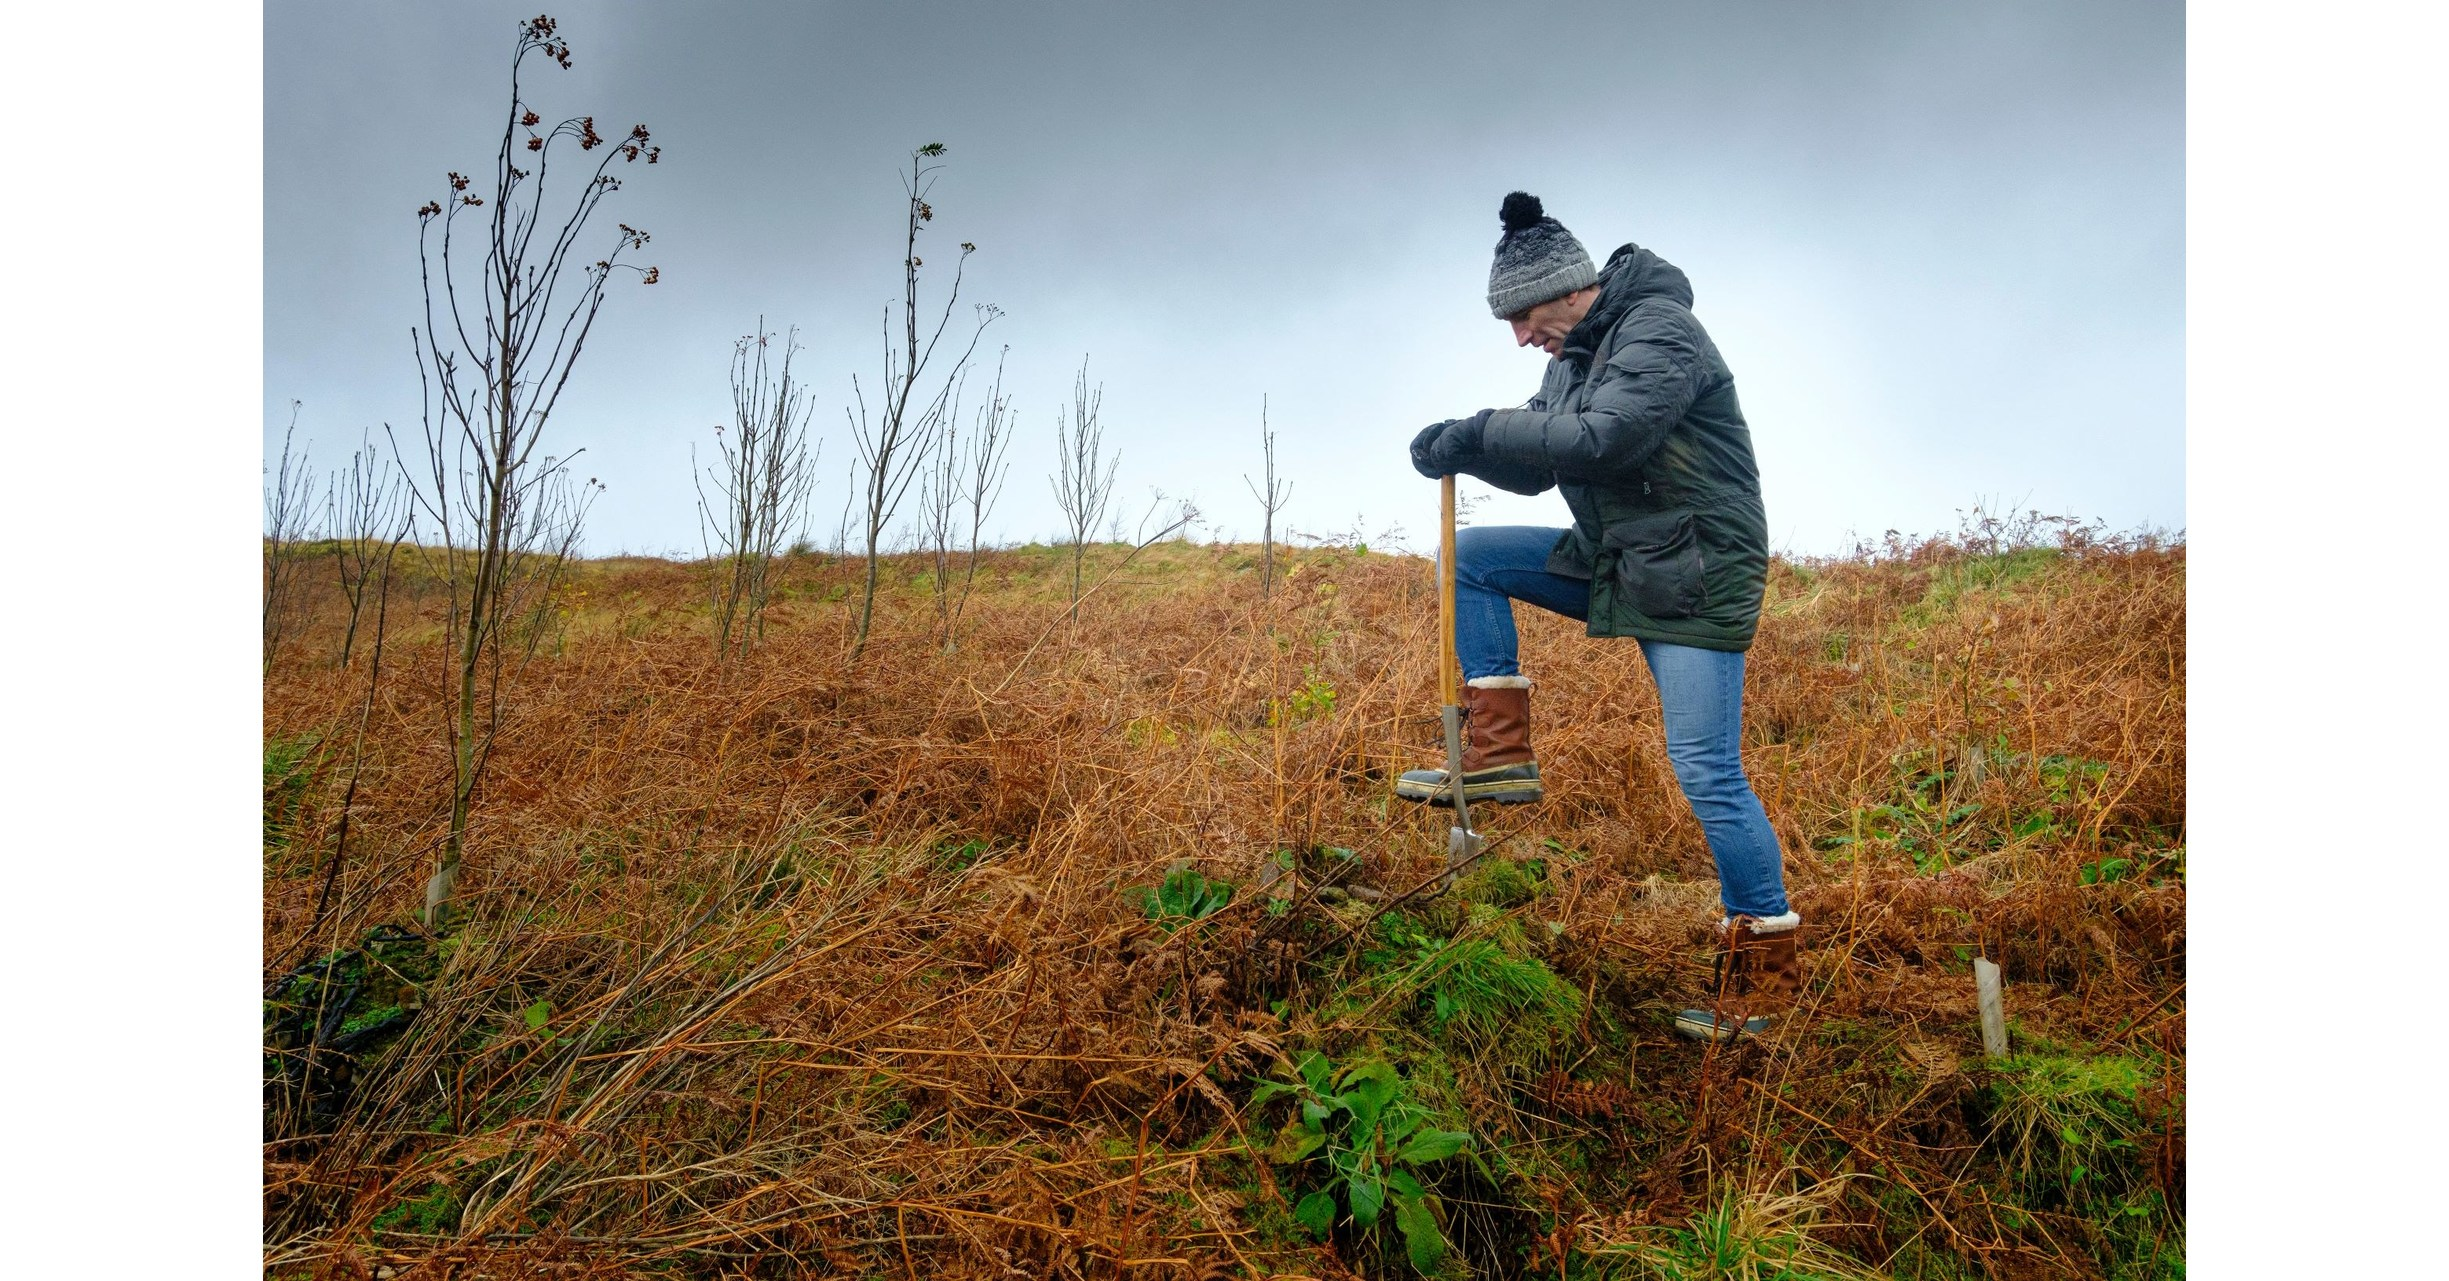 Johnnie Walker Gets Into The Festive Spirit By Giving The Gift Of One Million Trees photo